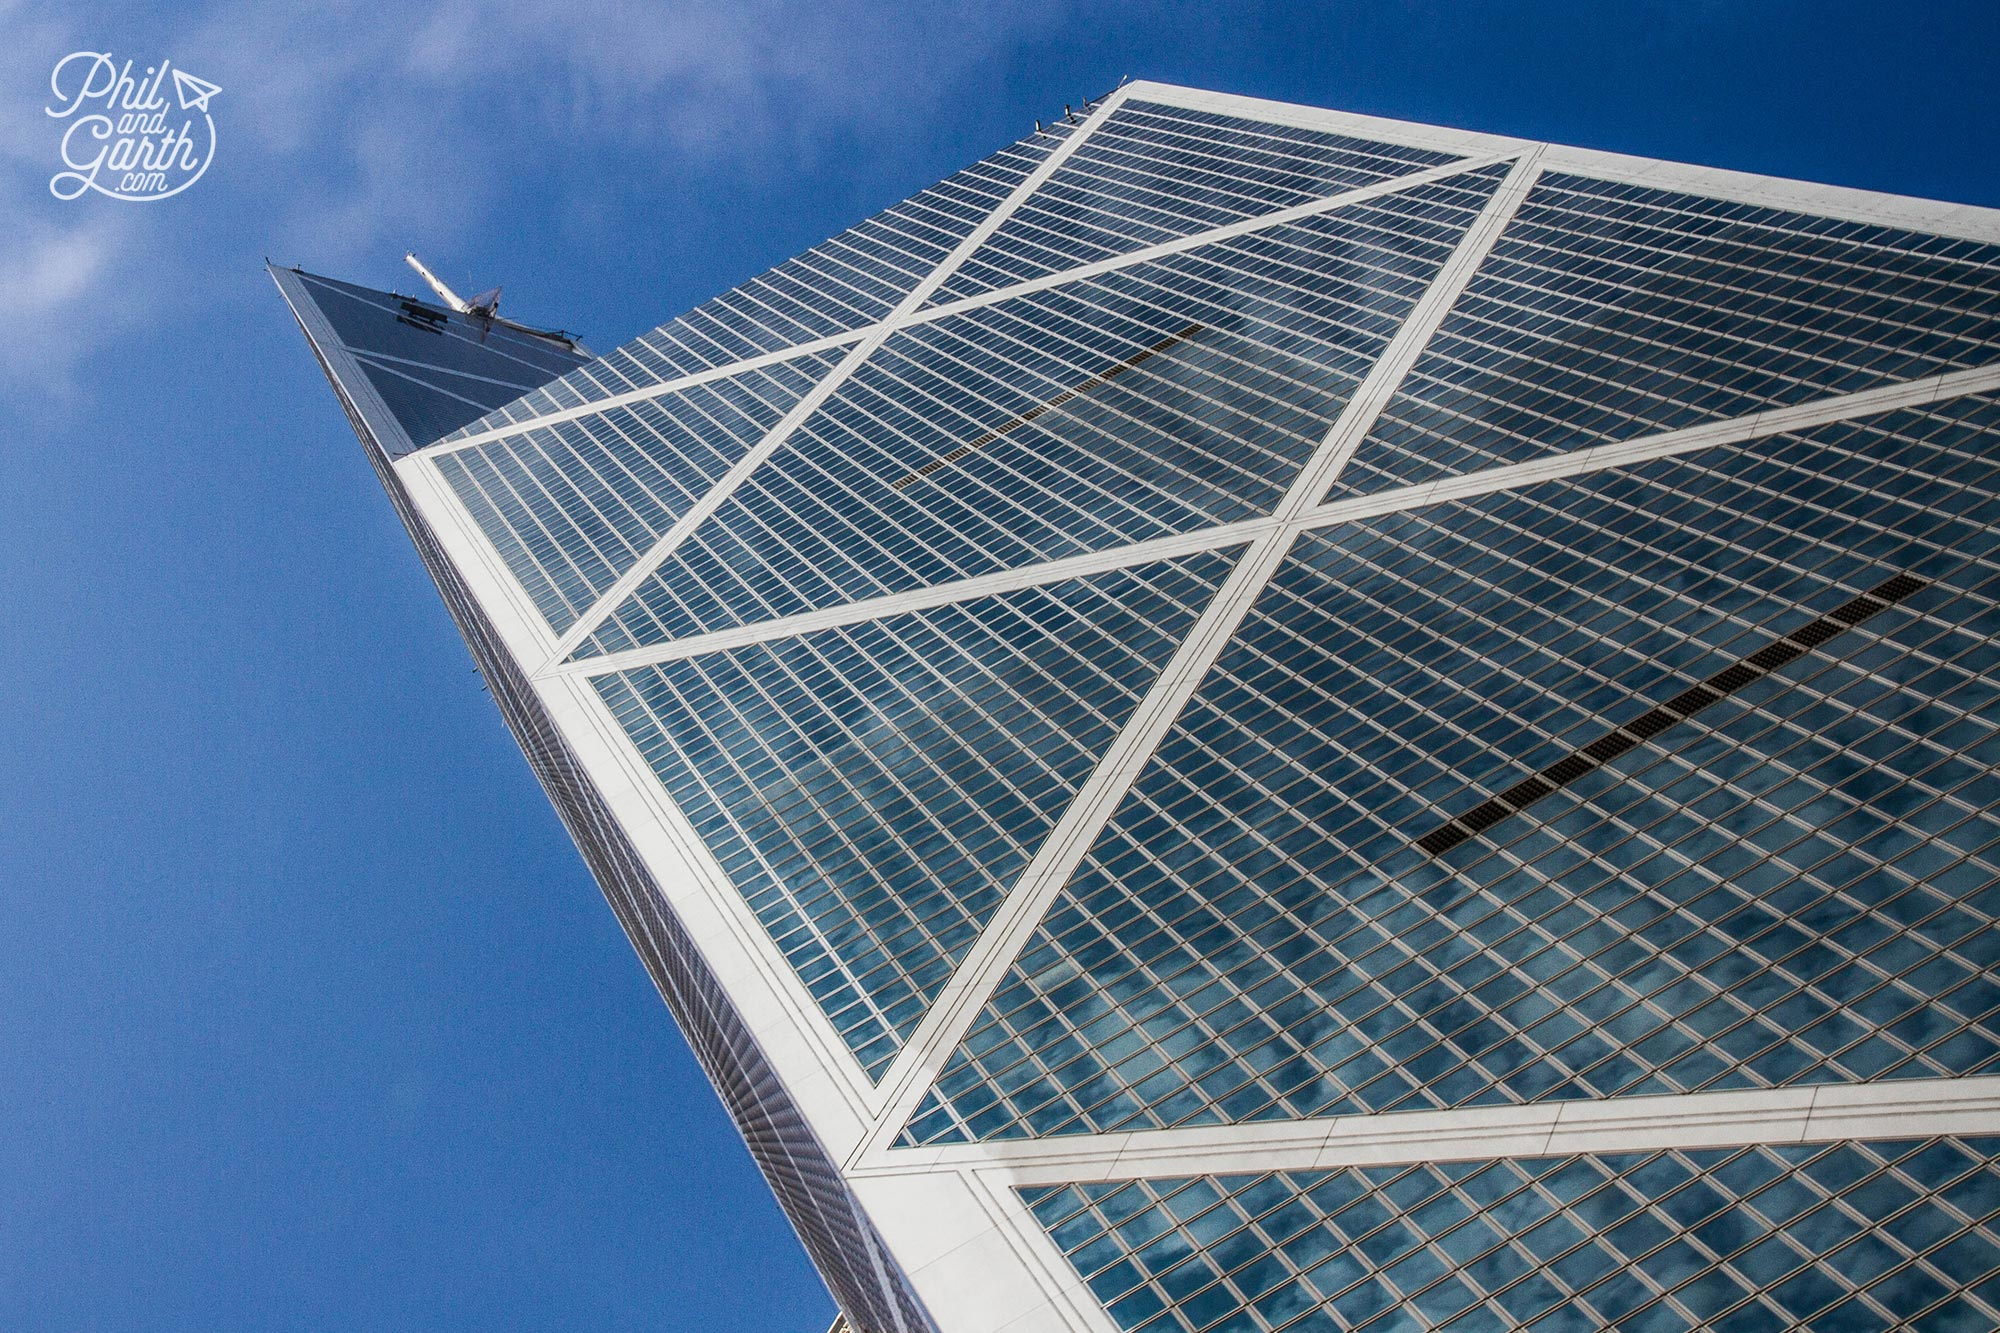 The Bank of China Tower soaring into the sky